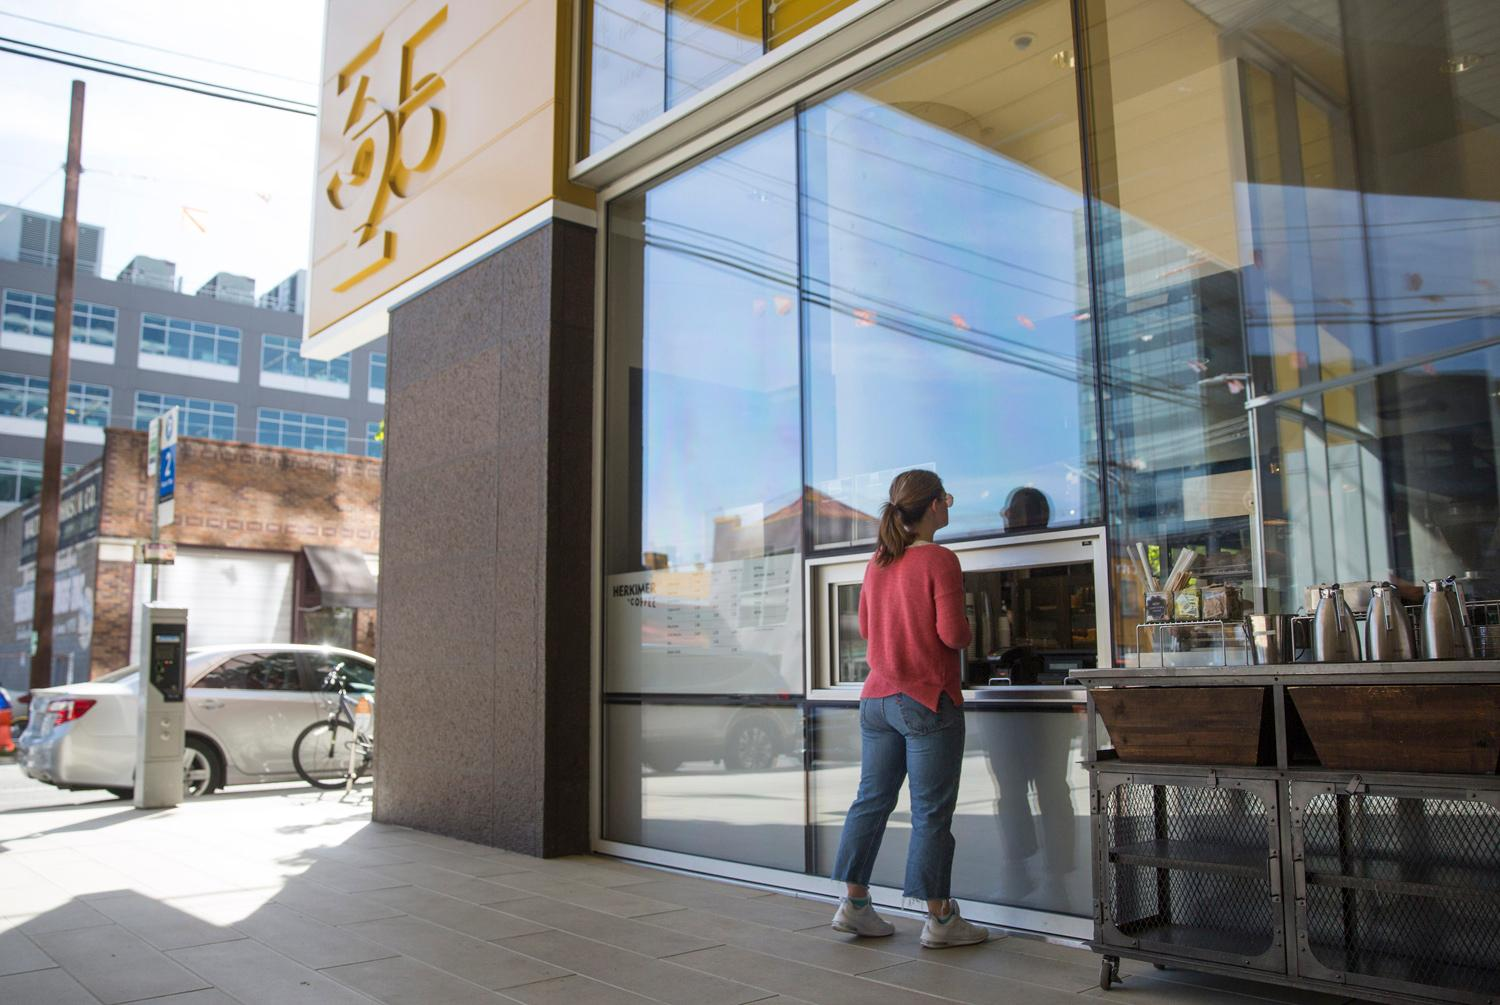 <p>#6. Herkimer Coffee / Apollo Building: Herkimer is one of the only shops on campus with street/walk-up window access. Grab-and-go anyone??</p><p>Did you know there are 17 total coffee shops on the Amazon campus in South Lake Union? The tech company graciously allowed on us on their usually secretive campus to check out as many as we could get to in a two hour window (spoiler alert - it was 12). So...here they are! You'll have to use your imagination for the final missing five. We were quite please to see that all the coffee shops are local coffee roasters. (Image: Sy Bean / Seattle Refined)</p>